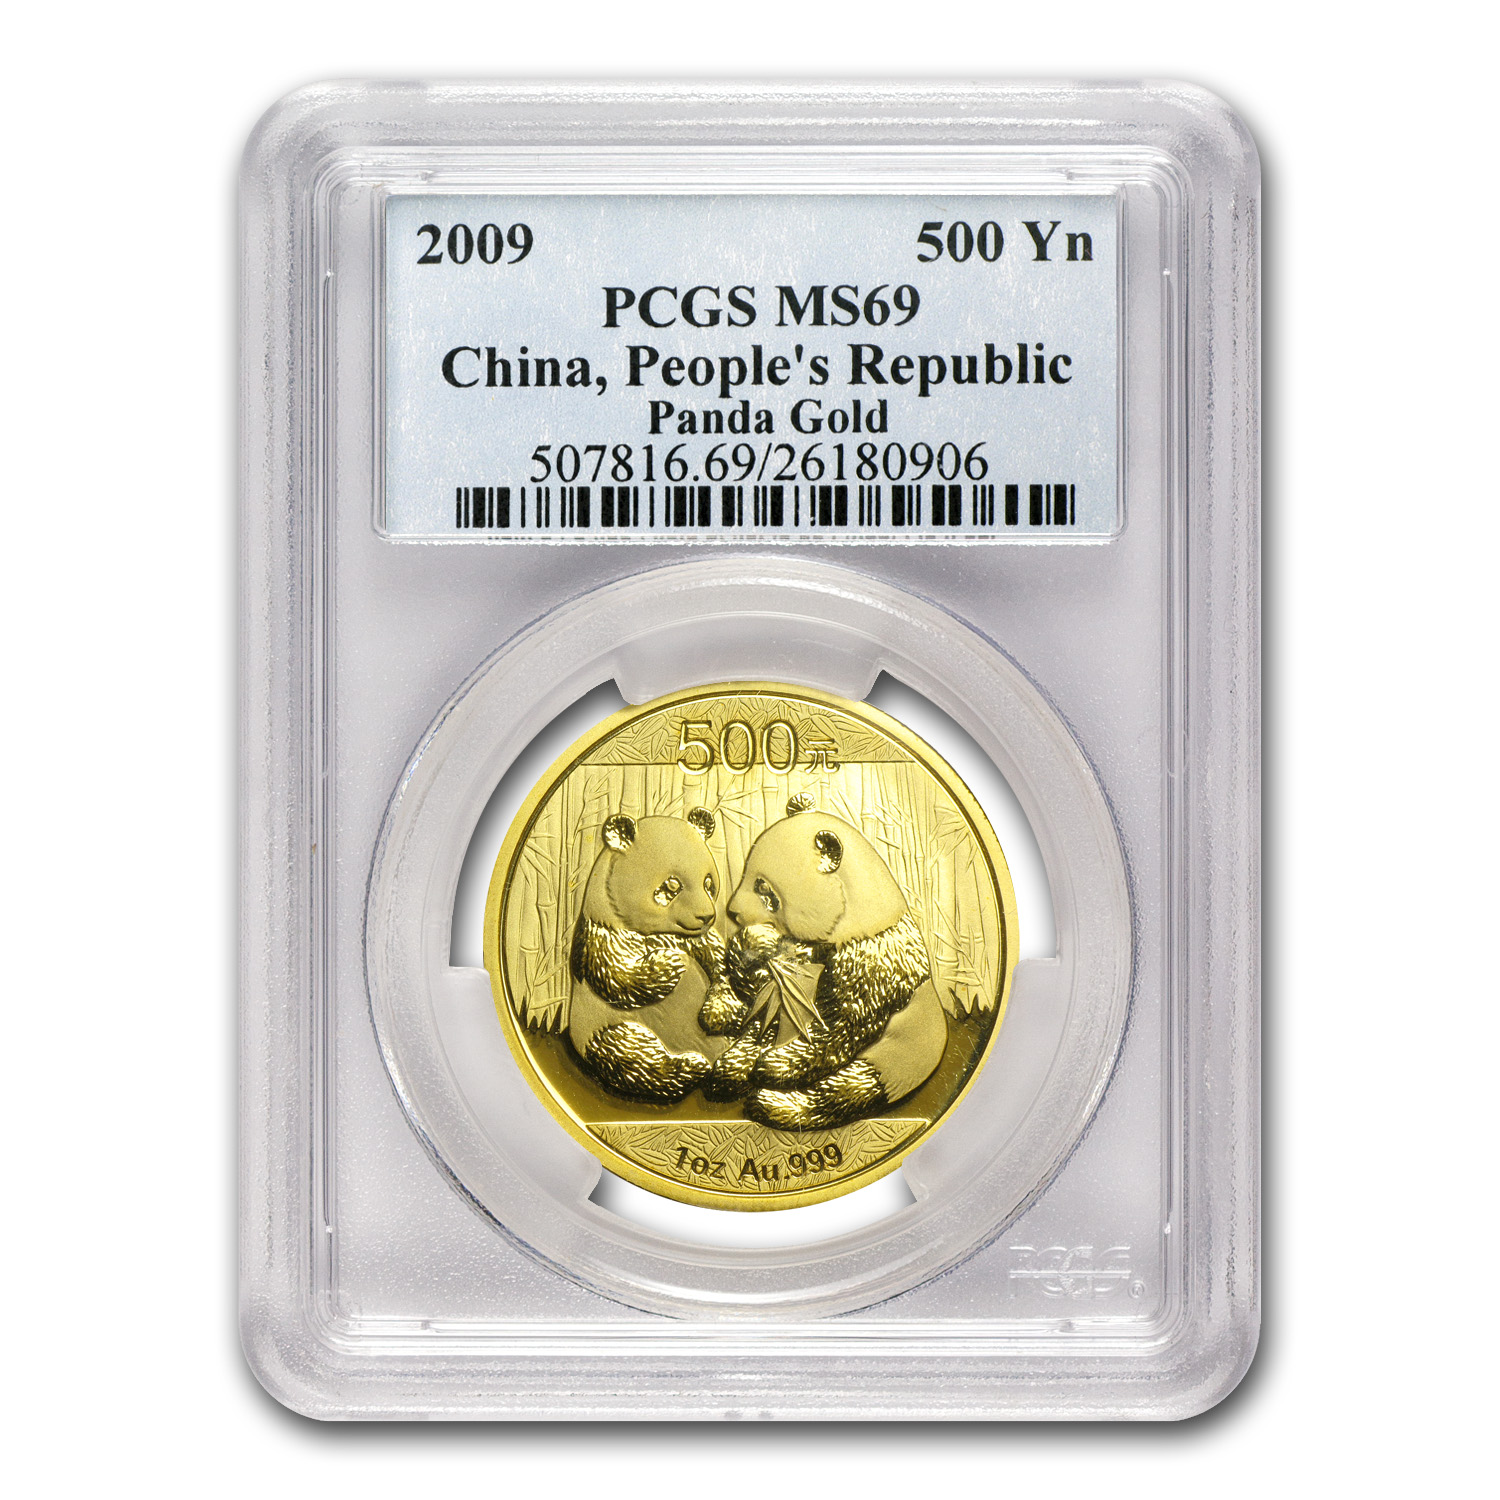 2009 1 oz Gold Chinese Panda MS-69 PCGS